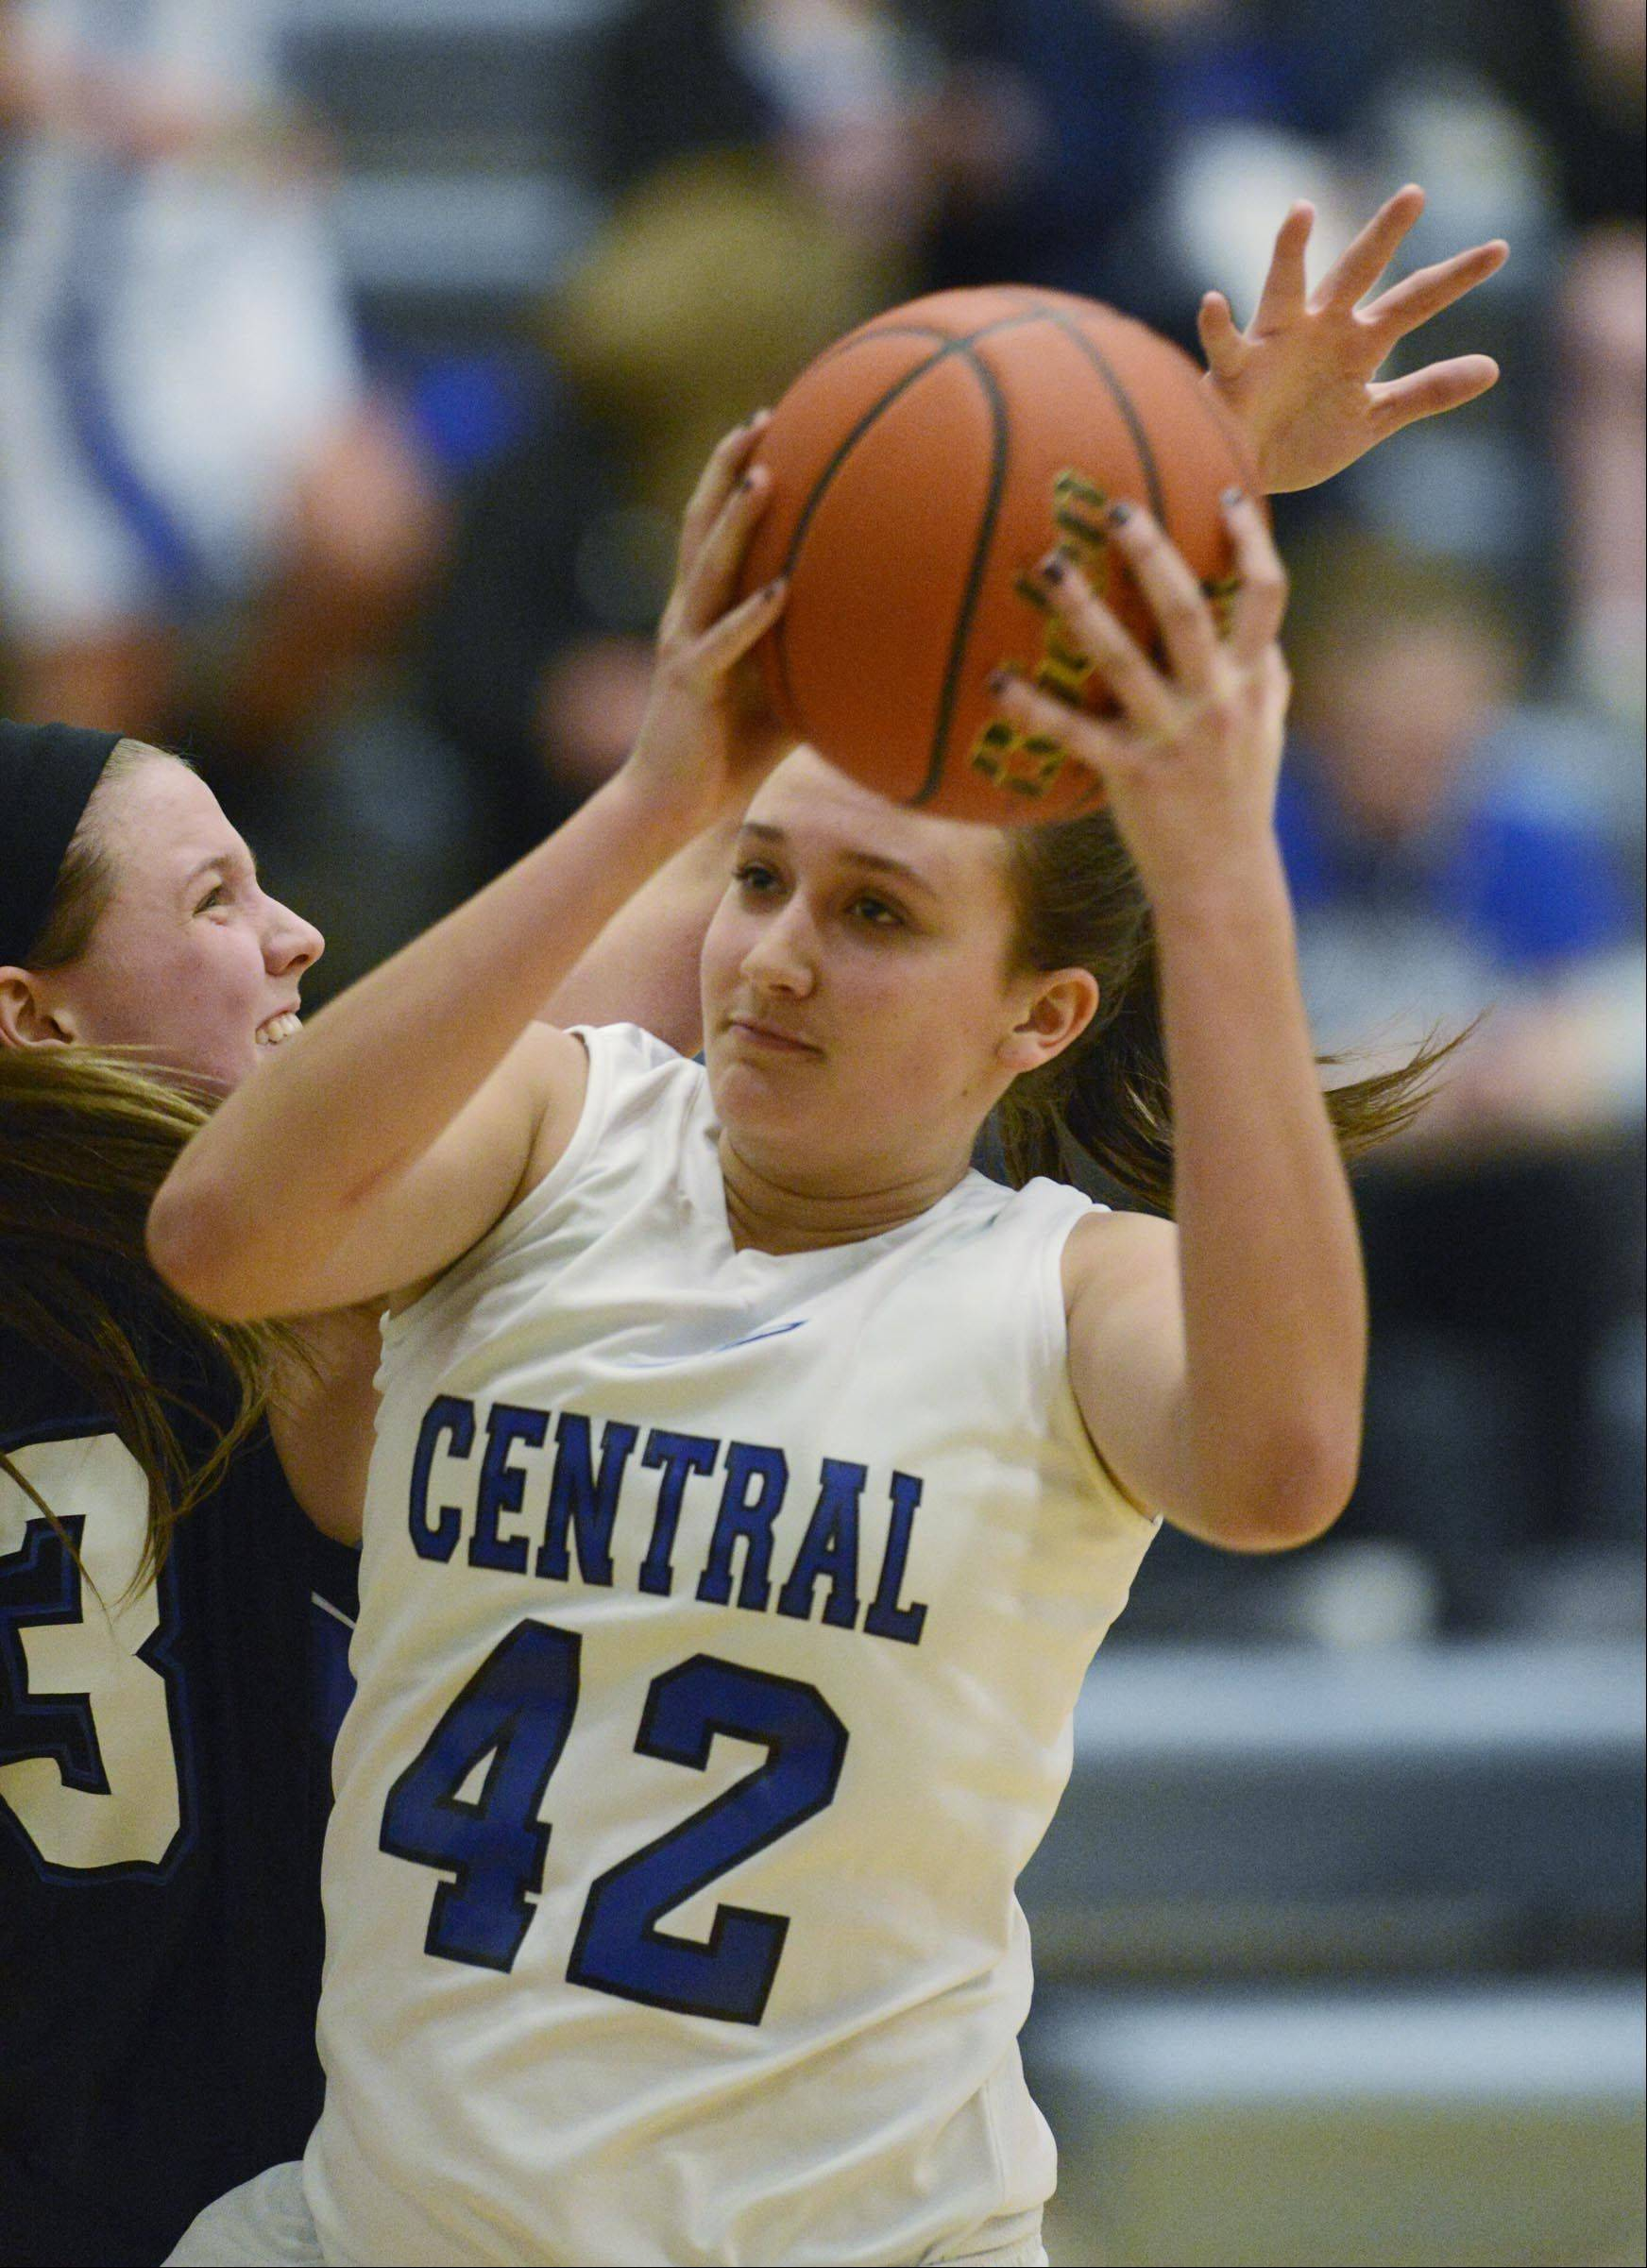 Burlington Central's Alison Colby gets past St. Charles North's Nicole Davidson.